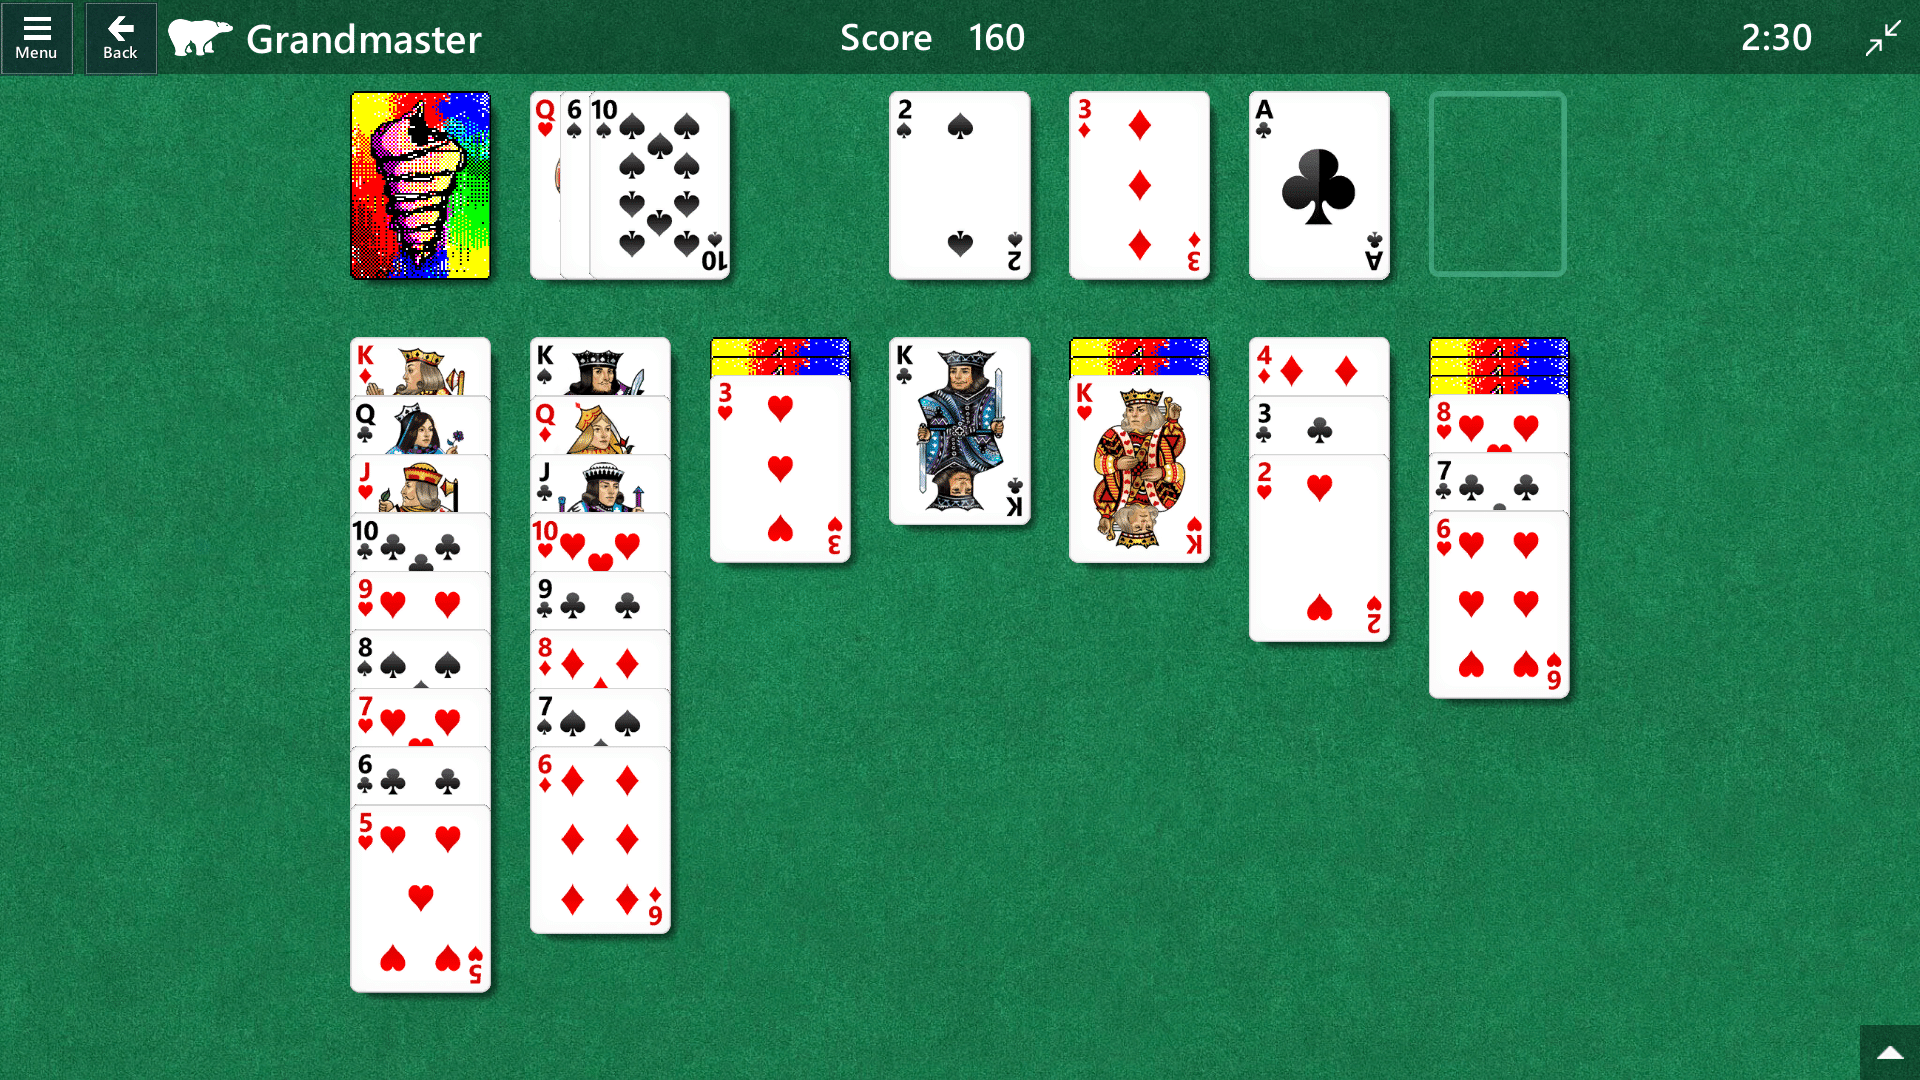 An unwinnable game of Solitaire. In story mode, that would mean my player gets fired.